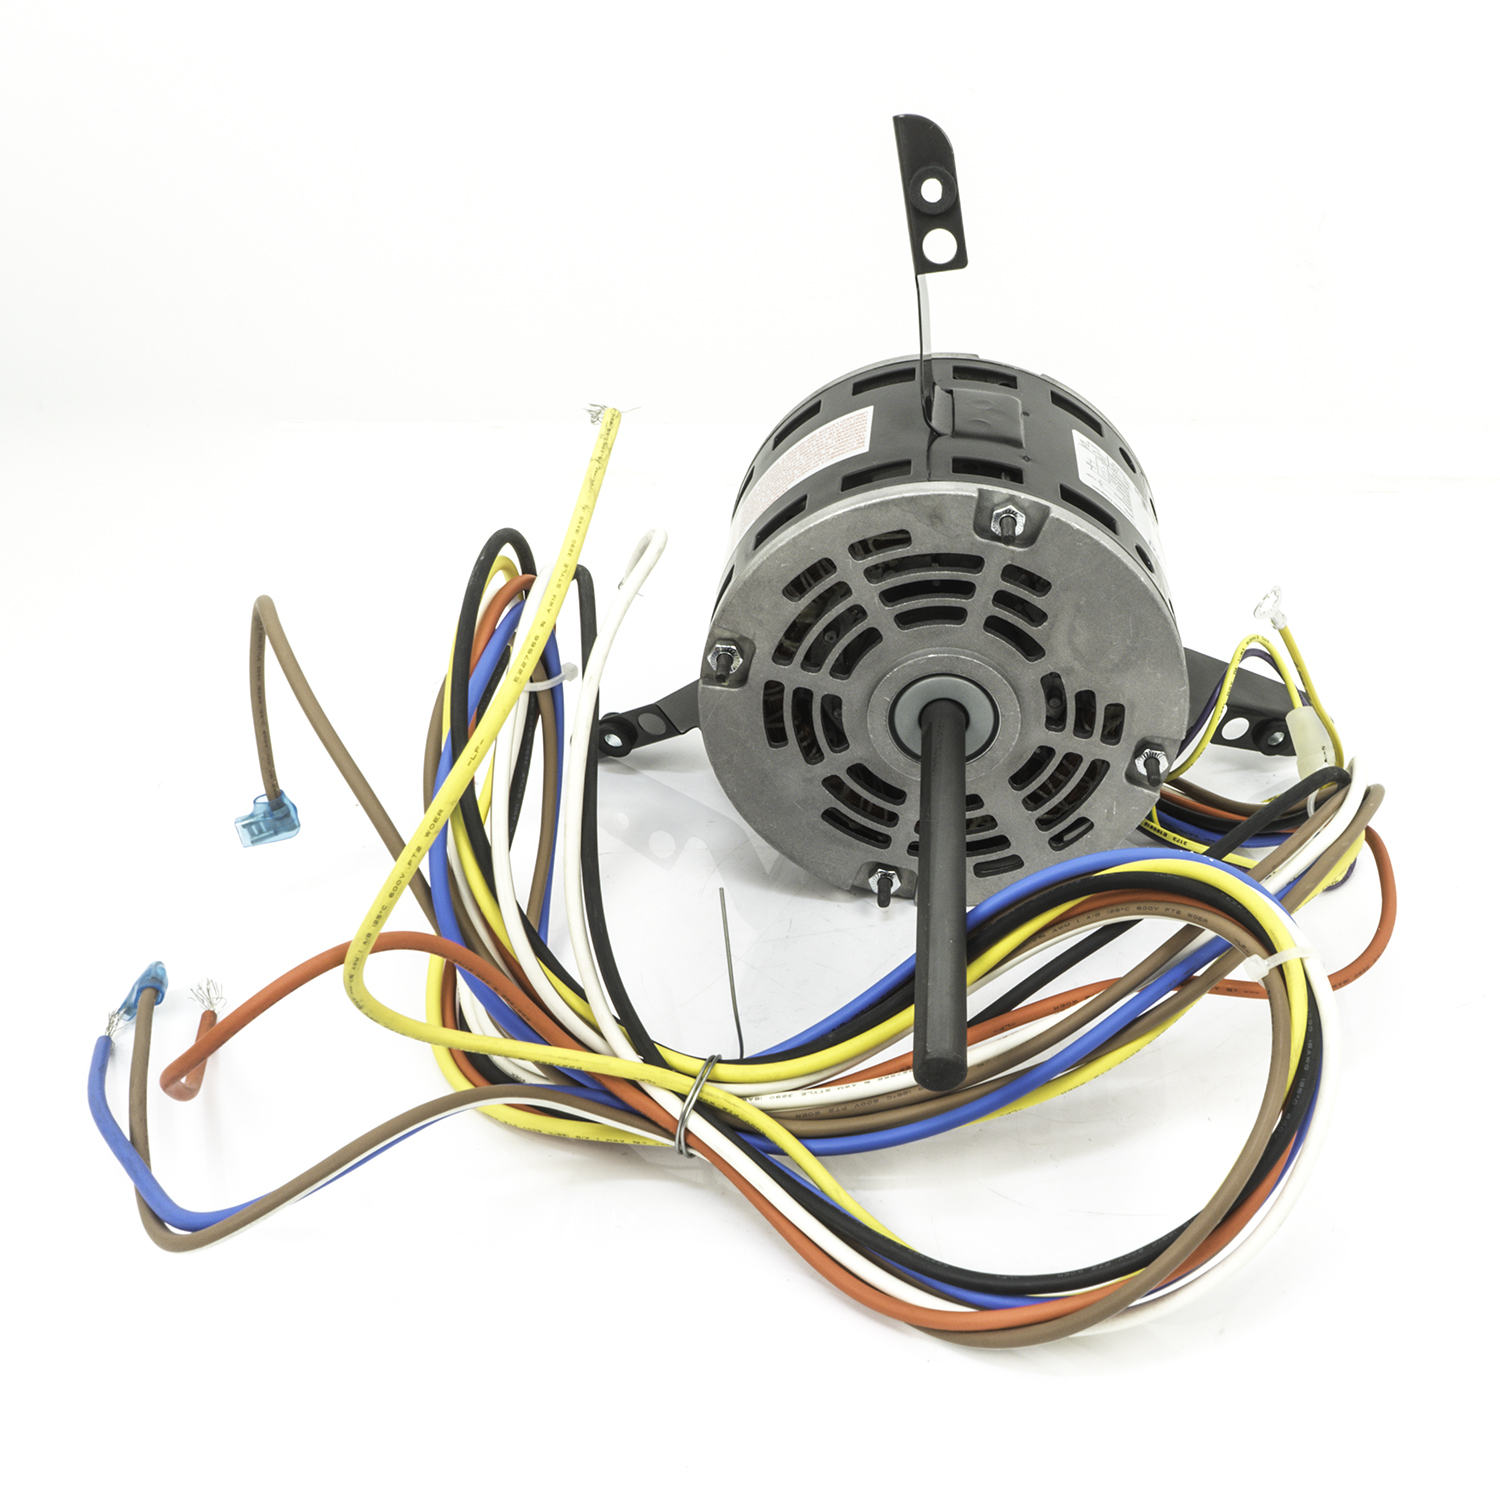 hight resolution of torsion flex direct drive blower motor 1 3 hp 208 230 volt 1075 rpm packard online